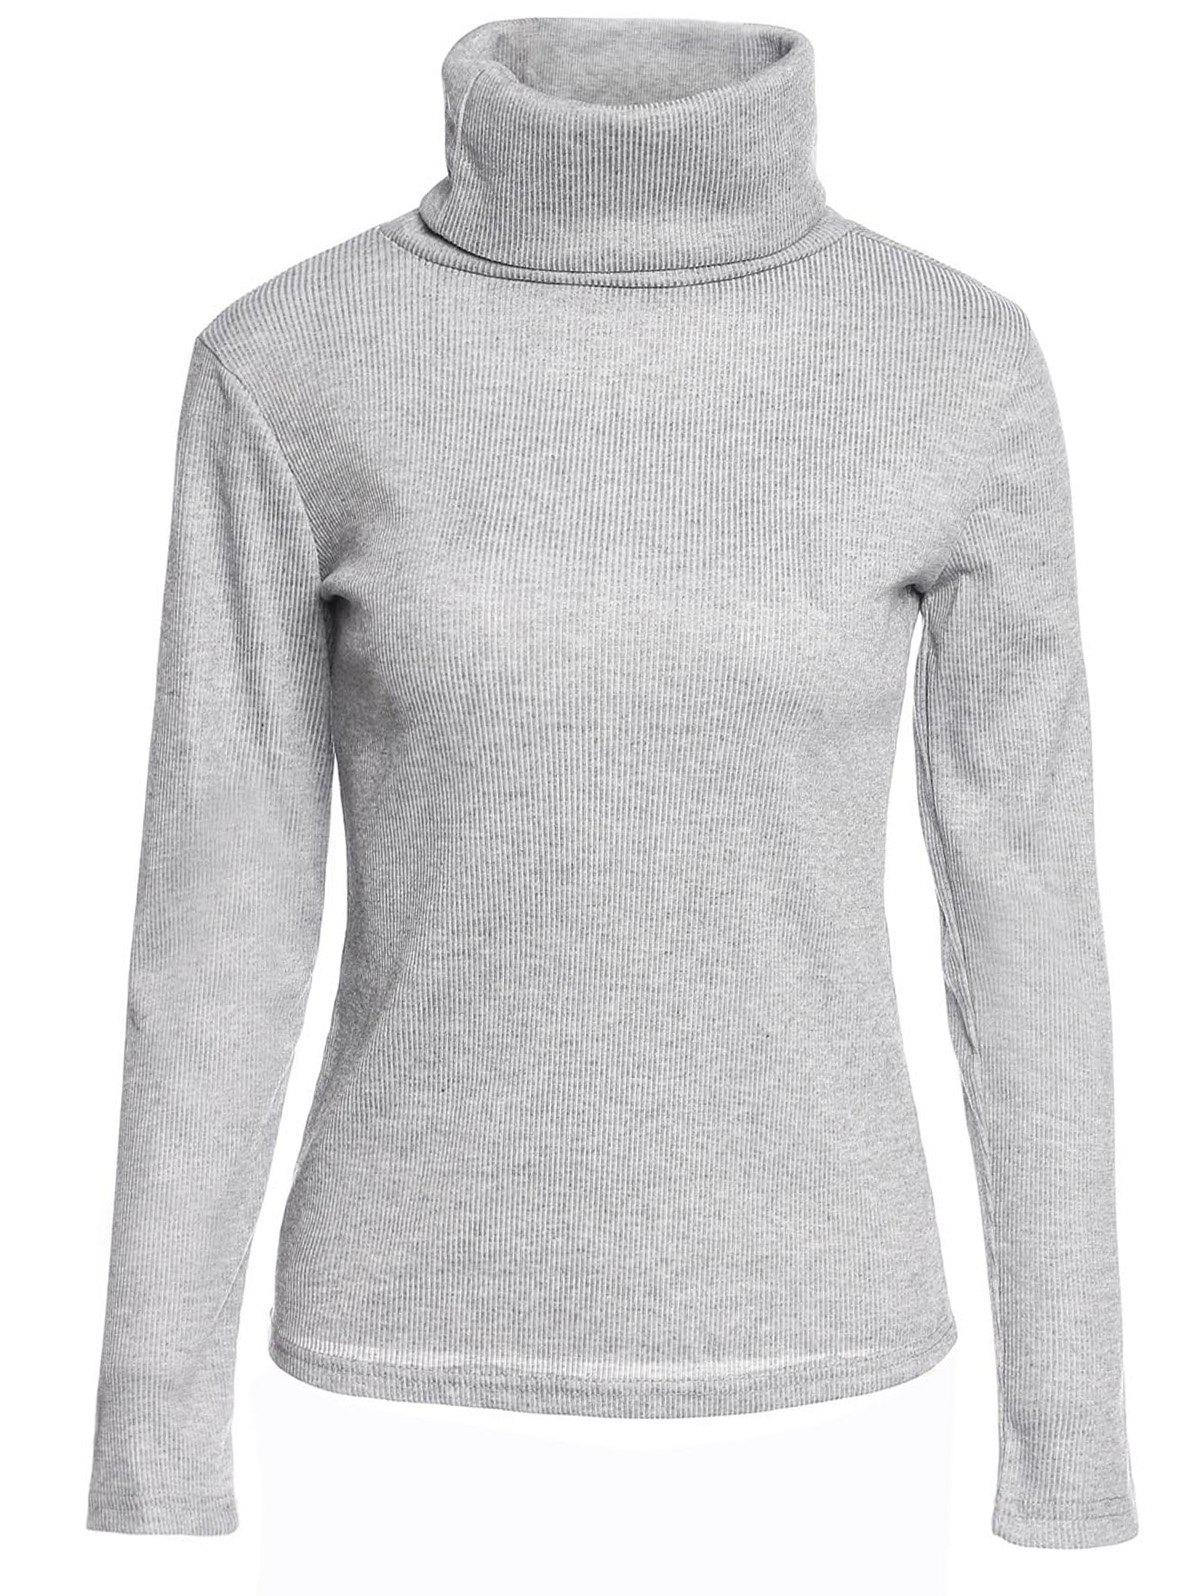 Casual Turtleneck Long Sleeve Gray Pullover Knitwear For WomenWOMEN<br><br>Size: L; Color: GRAY; Type: Pullovers; Material: Polyester; Sleeve Length: Full; Collar: Turtleneck; Style: Fashion; Pattern Type: Solid; Season: Spring,Fall; Weight: 0.260kg; Package Contents: 1 x Knitwear;